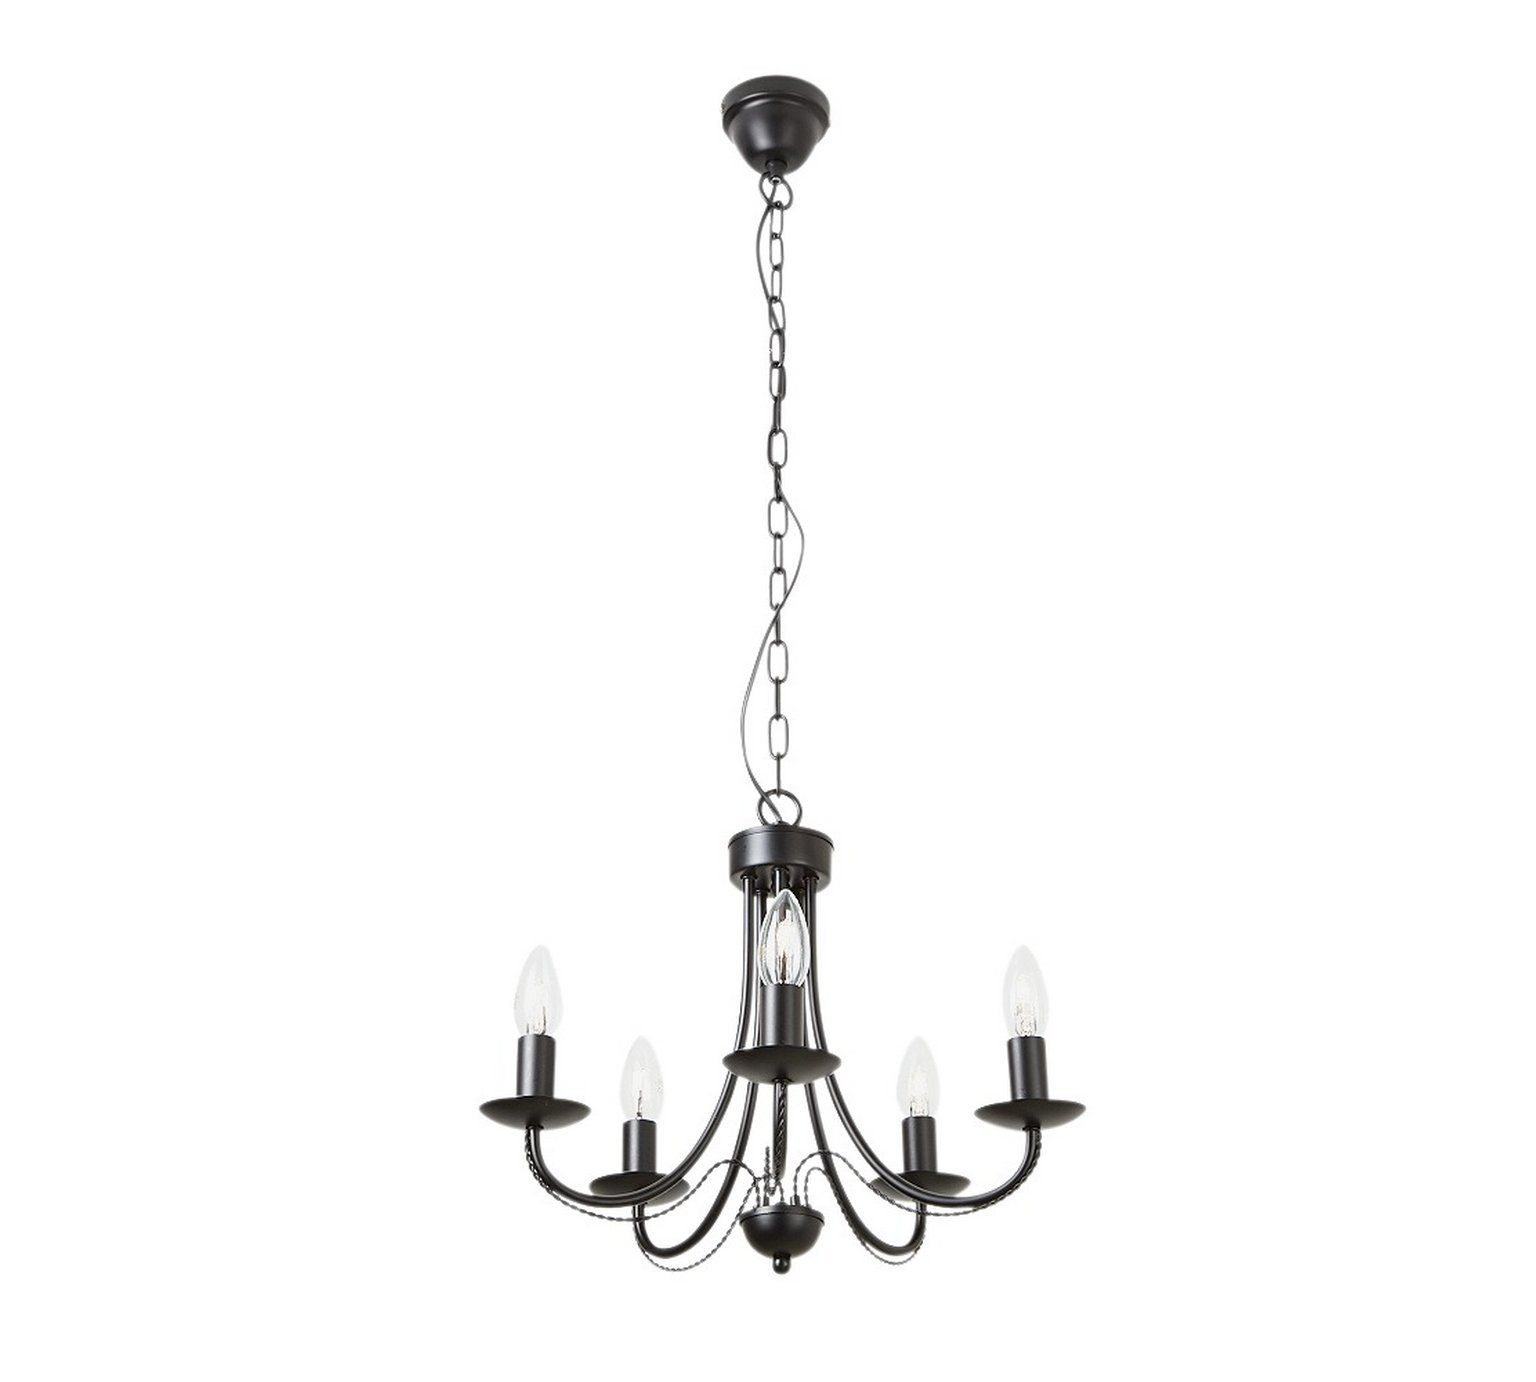 Buy collection twirl 5 light twist chandelier black at argos buy collection twirl 5 light twist chandelier black at argos aloadofball Gallery